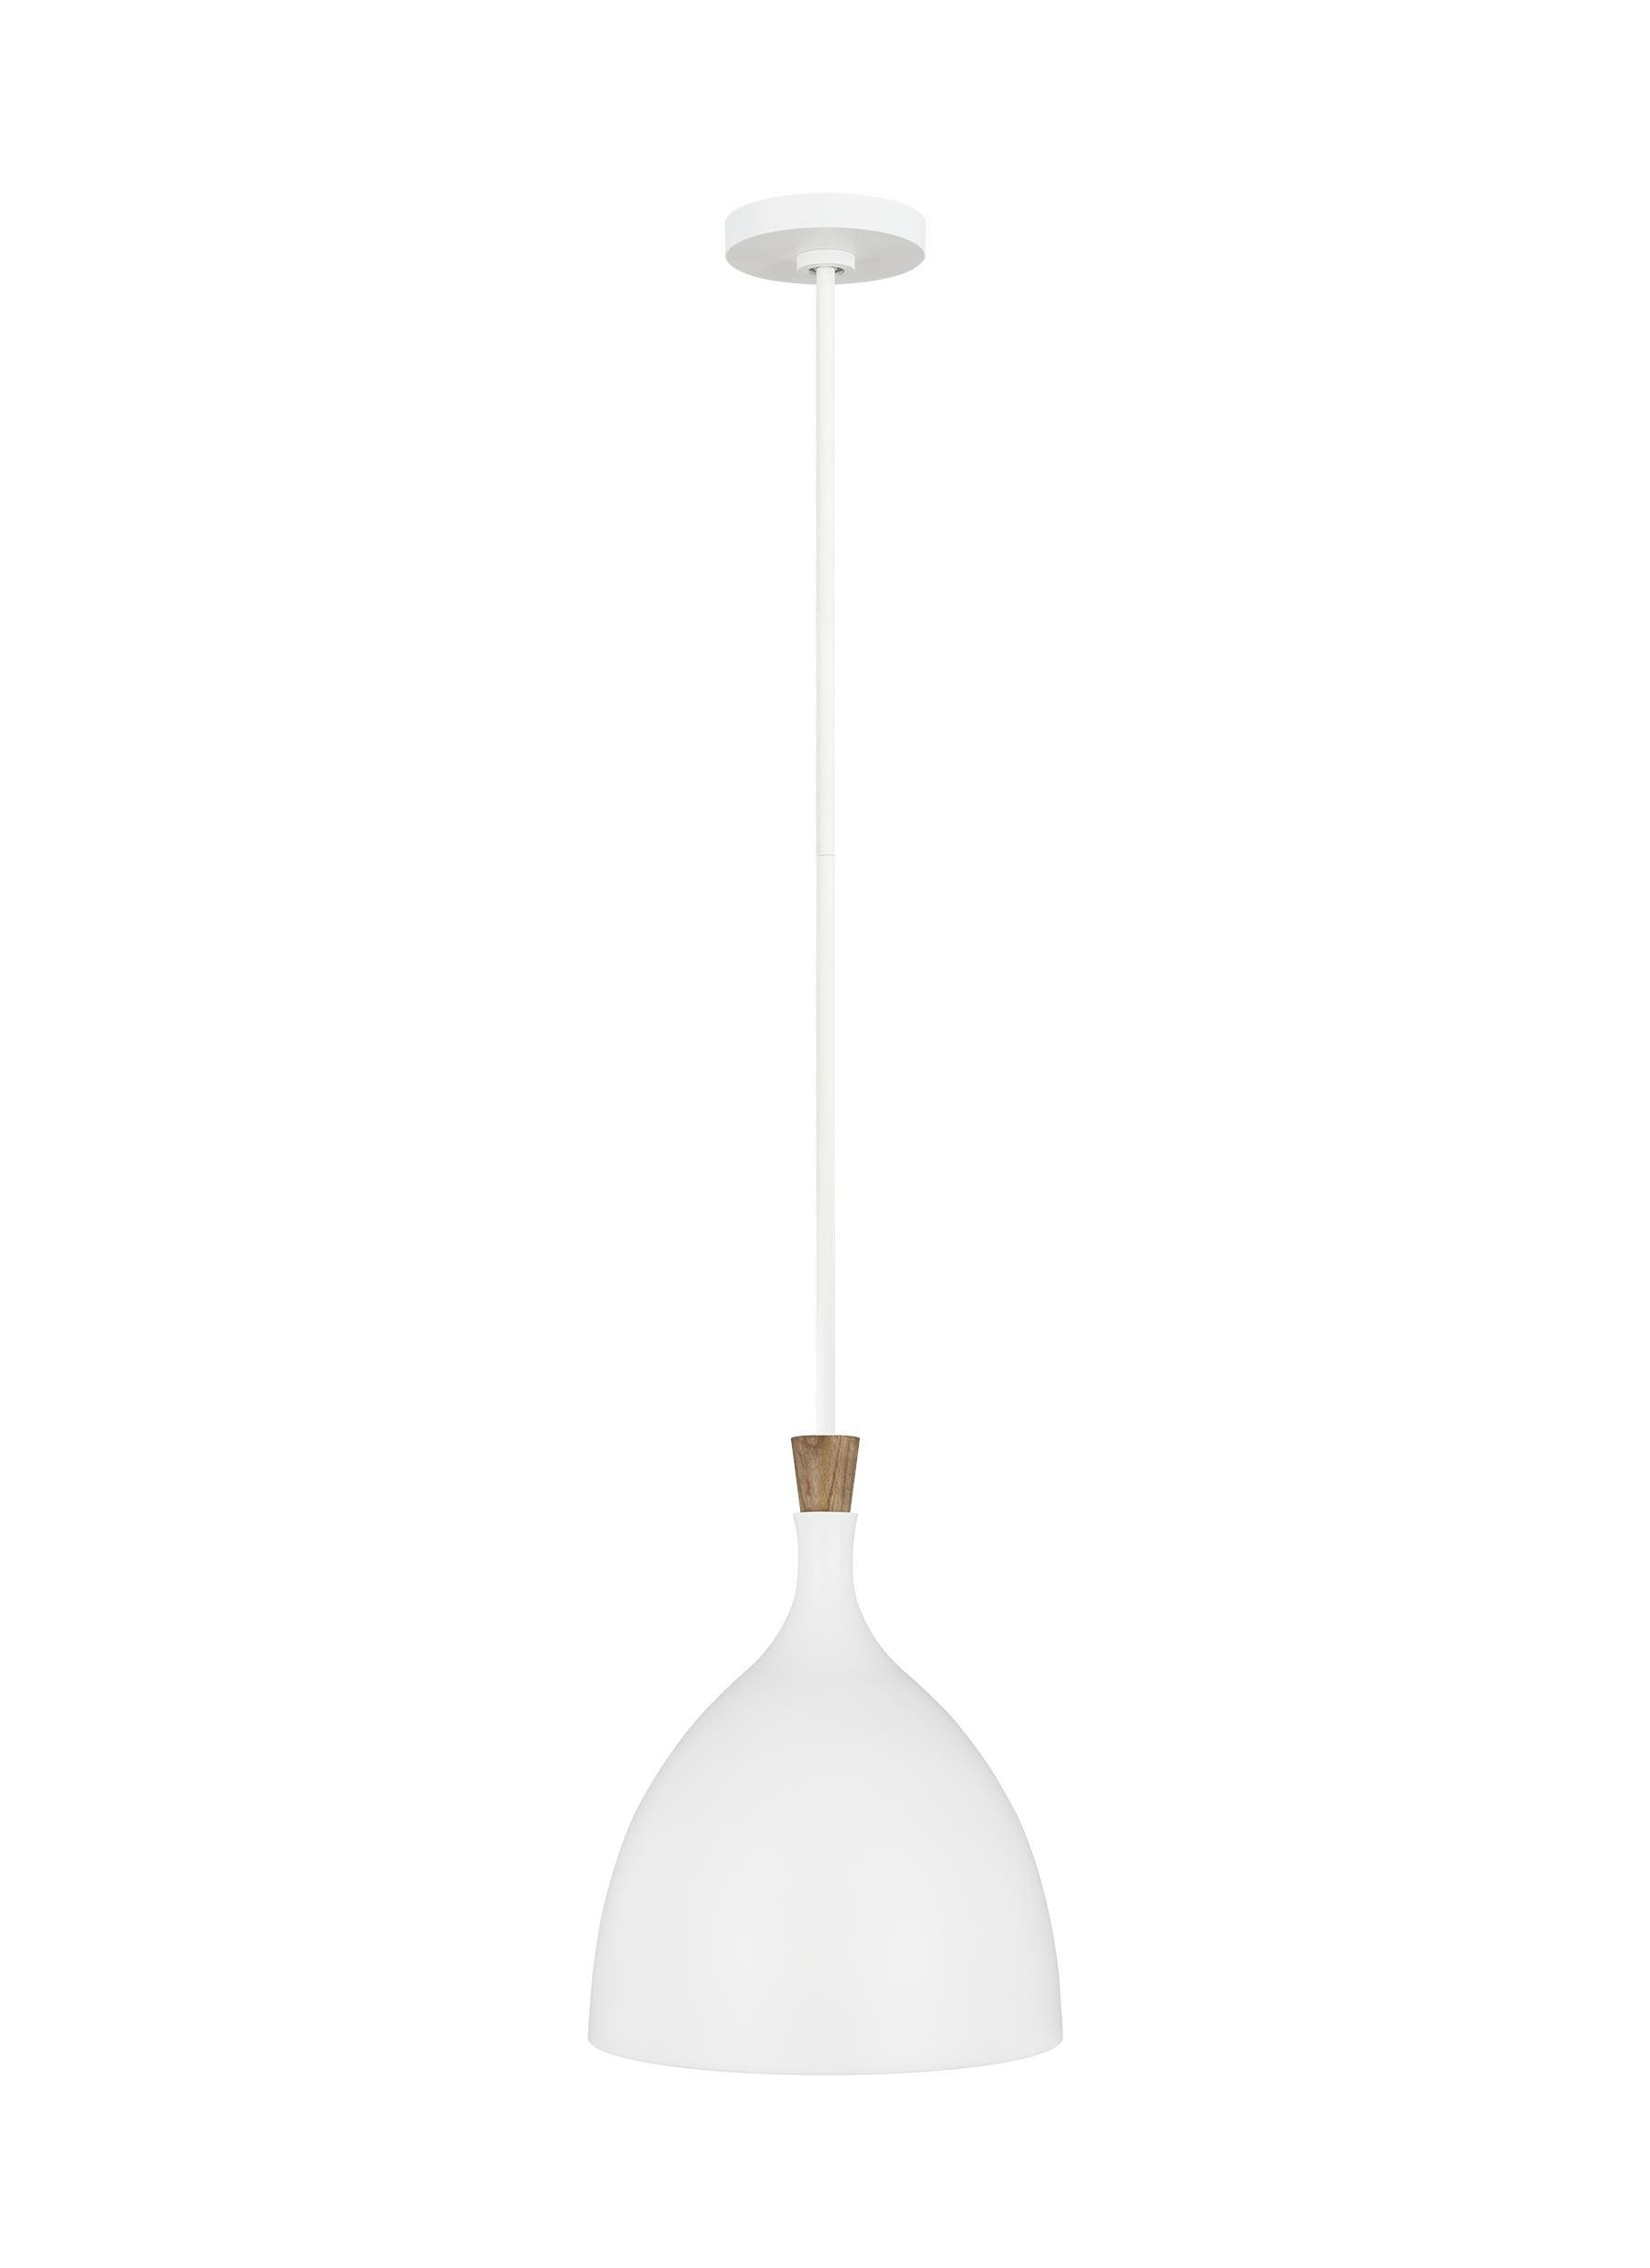 Most Up To Date Darwin 1 Light Single Dome Pendant Throughout Monadnock 1 Light Single Dome Pendants (View 13 of 25)